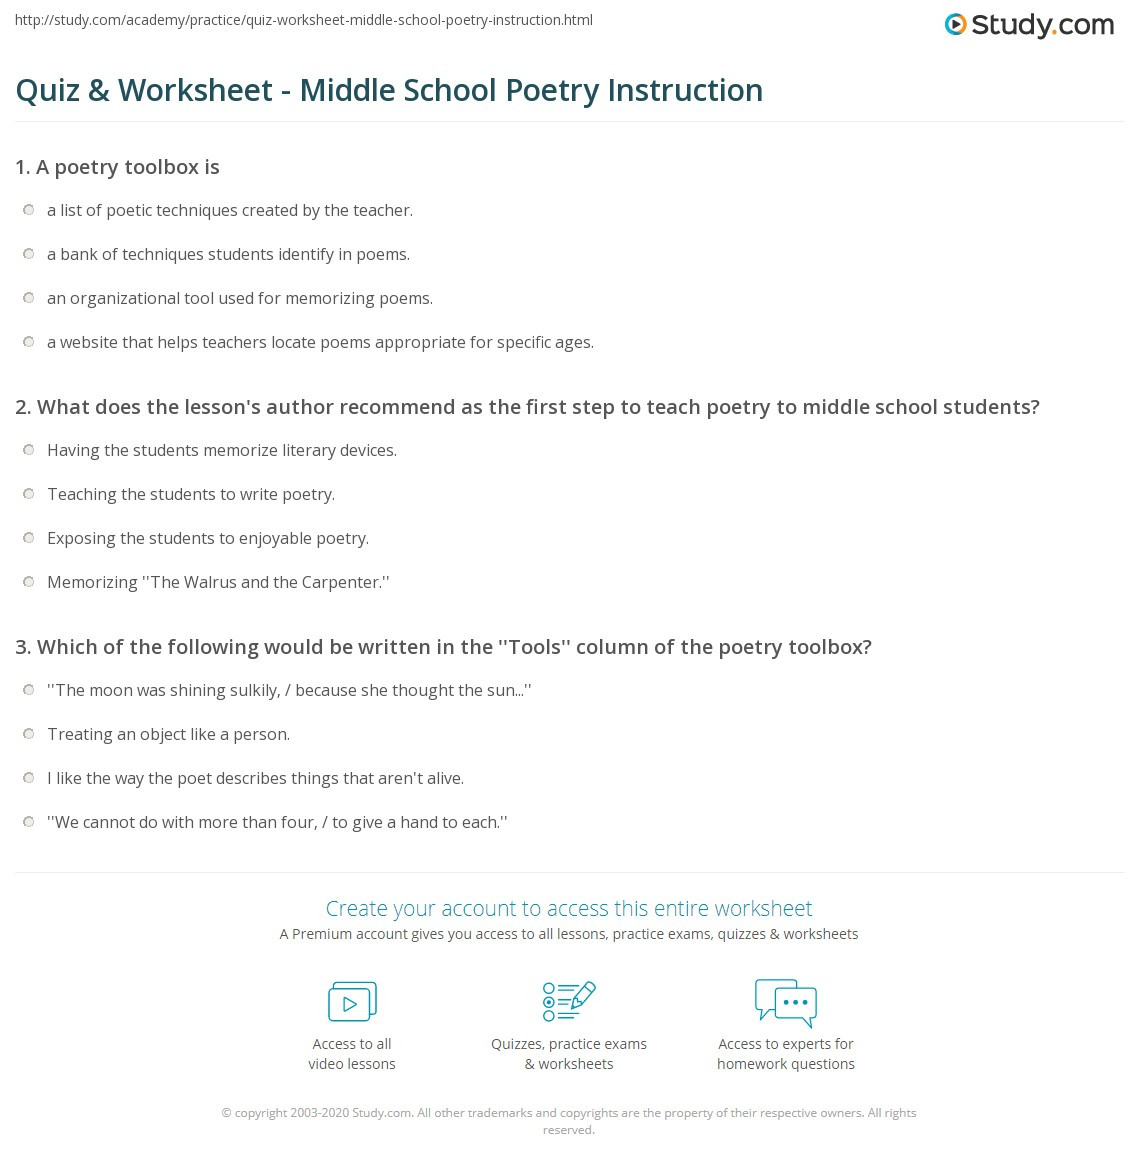 Cooking Worksheets for Middle School Quiz Worksheet Middle School Poetry Instruction Study